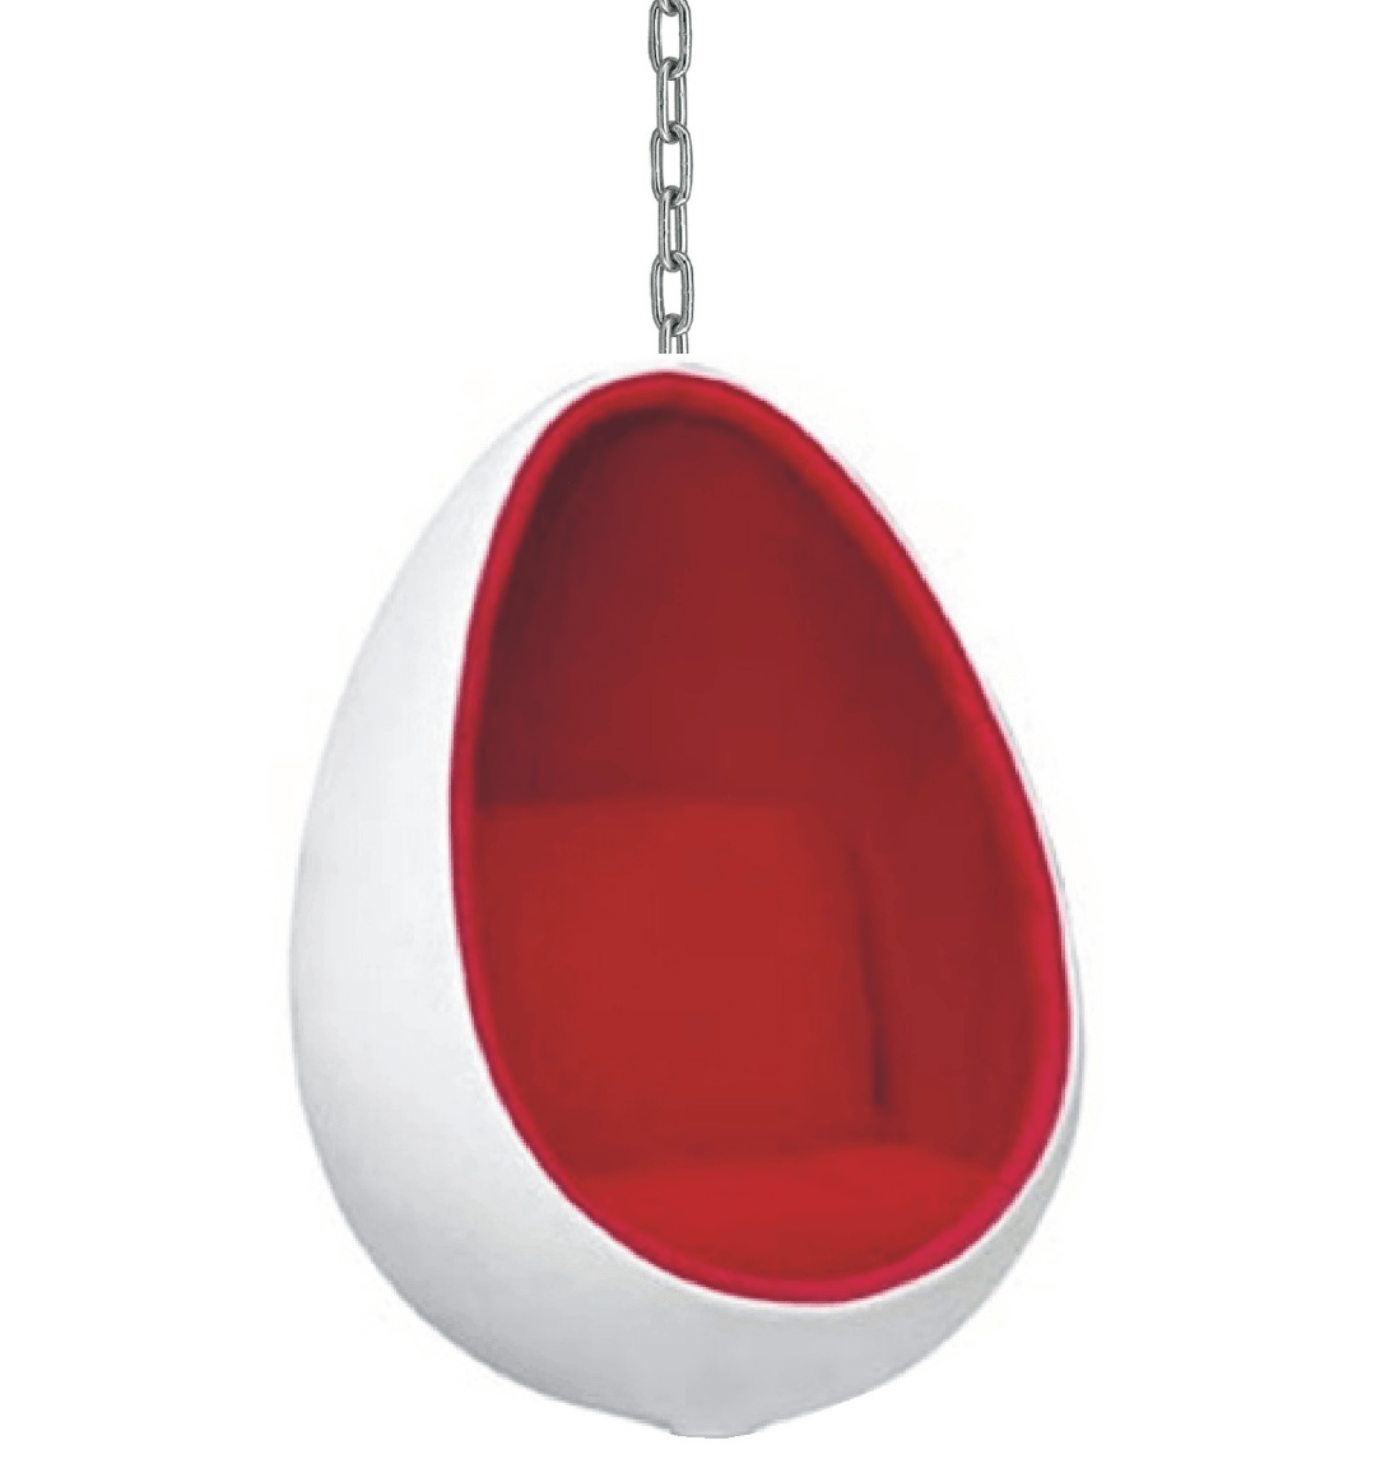 Cheap Hanging Egg Chair Trendspotting Hanging Chairs Are Swinging Into Kids